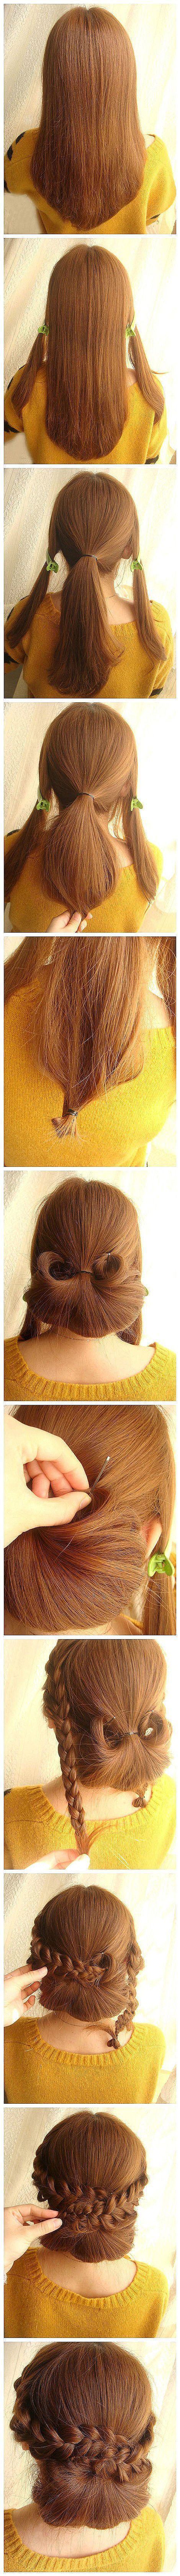 Us hair styling super hairstyles for all pinterest hair